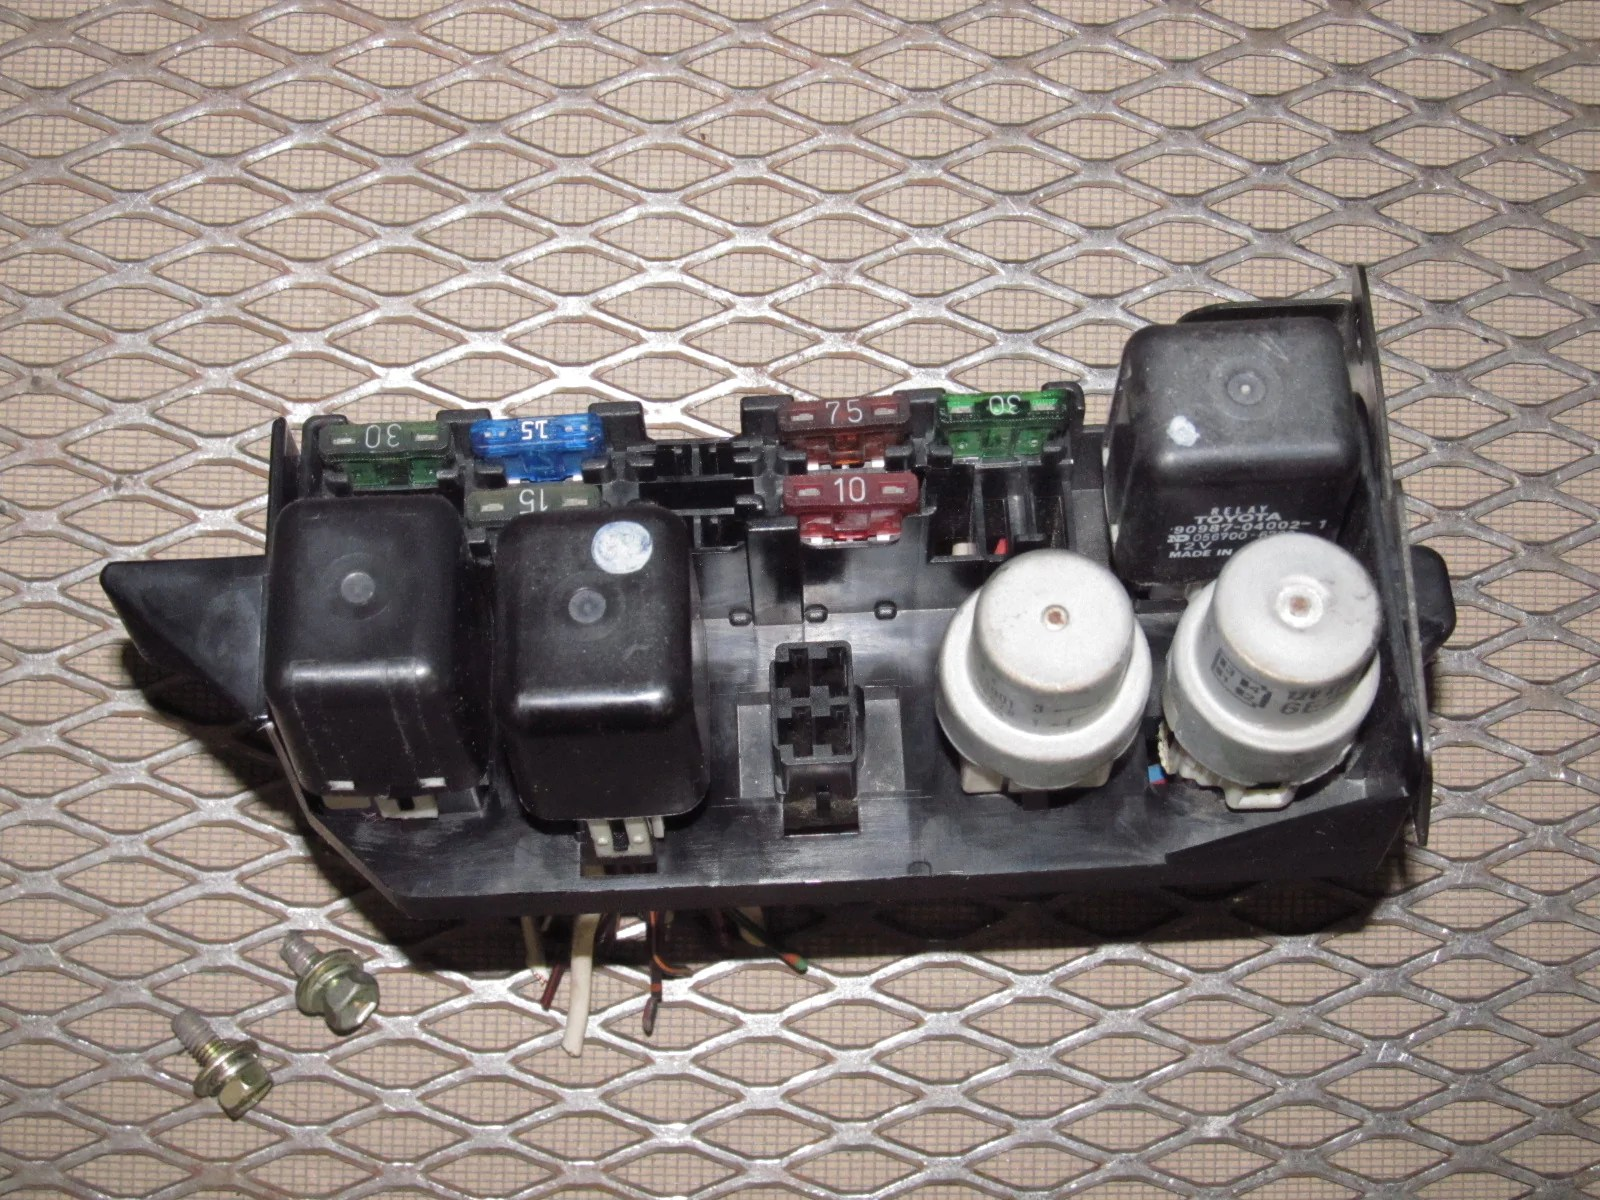 mr2 fuse box wiring diagram g985 mr2 fuse box wiring library diagram experts vehicle fuse box [ 1600 x 1200 Pixel ]